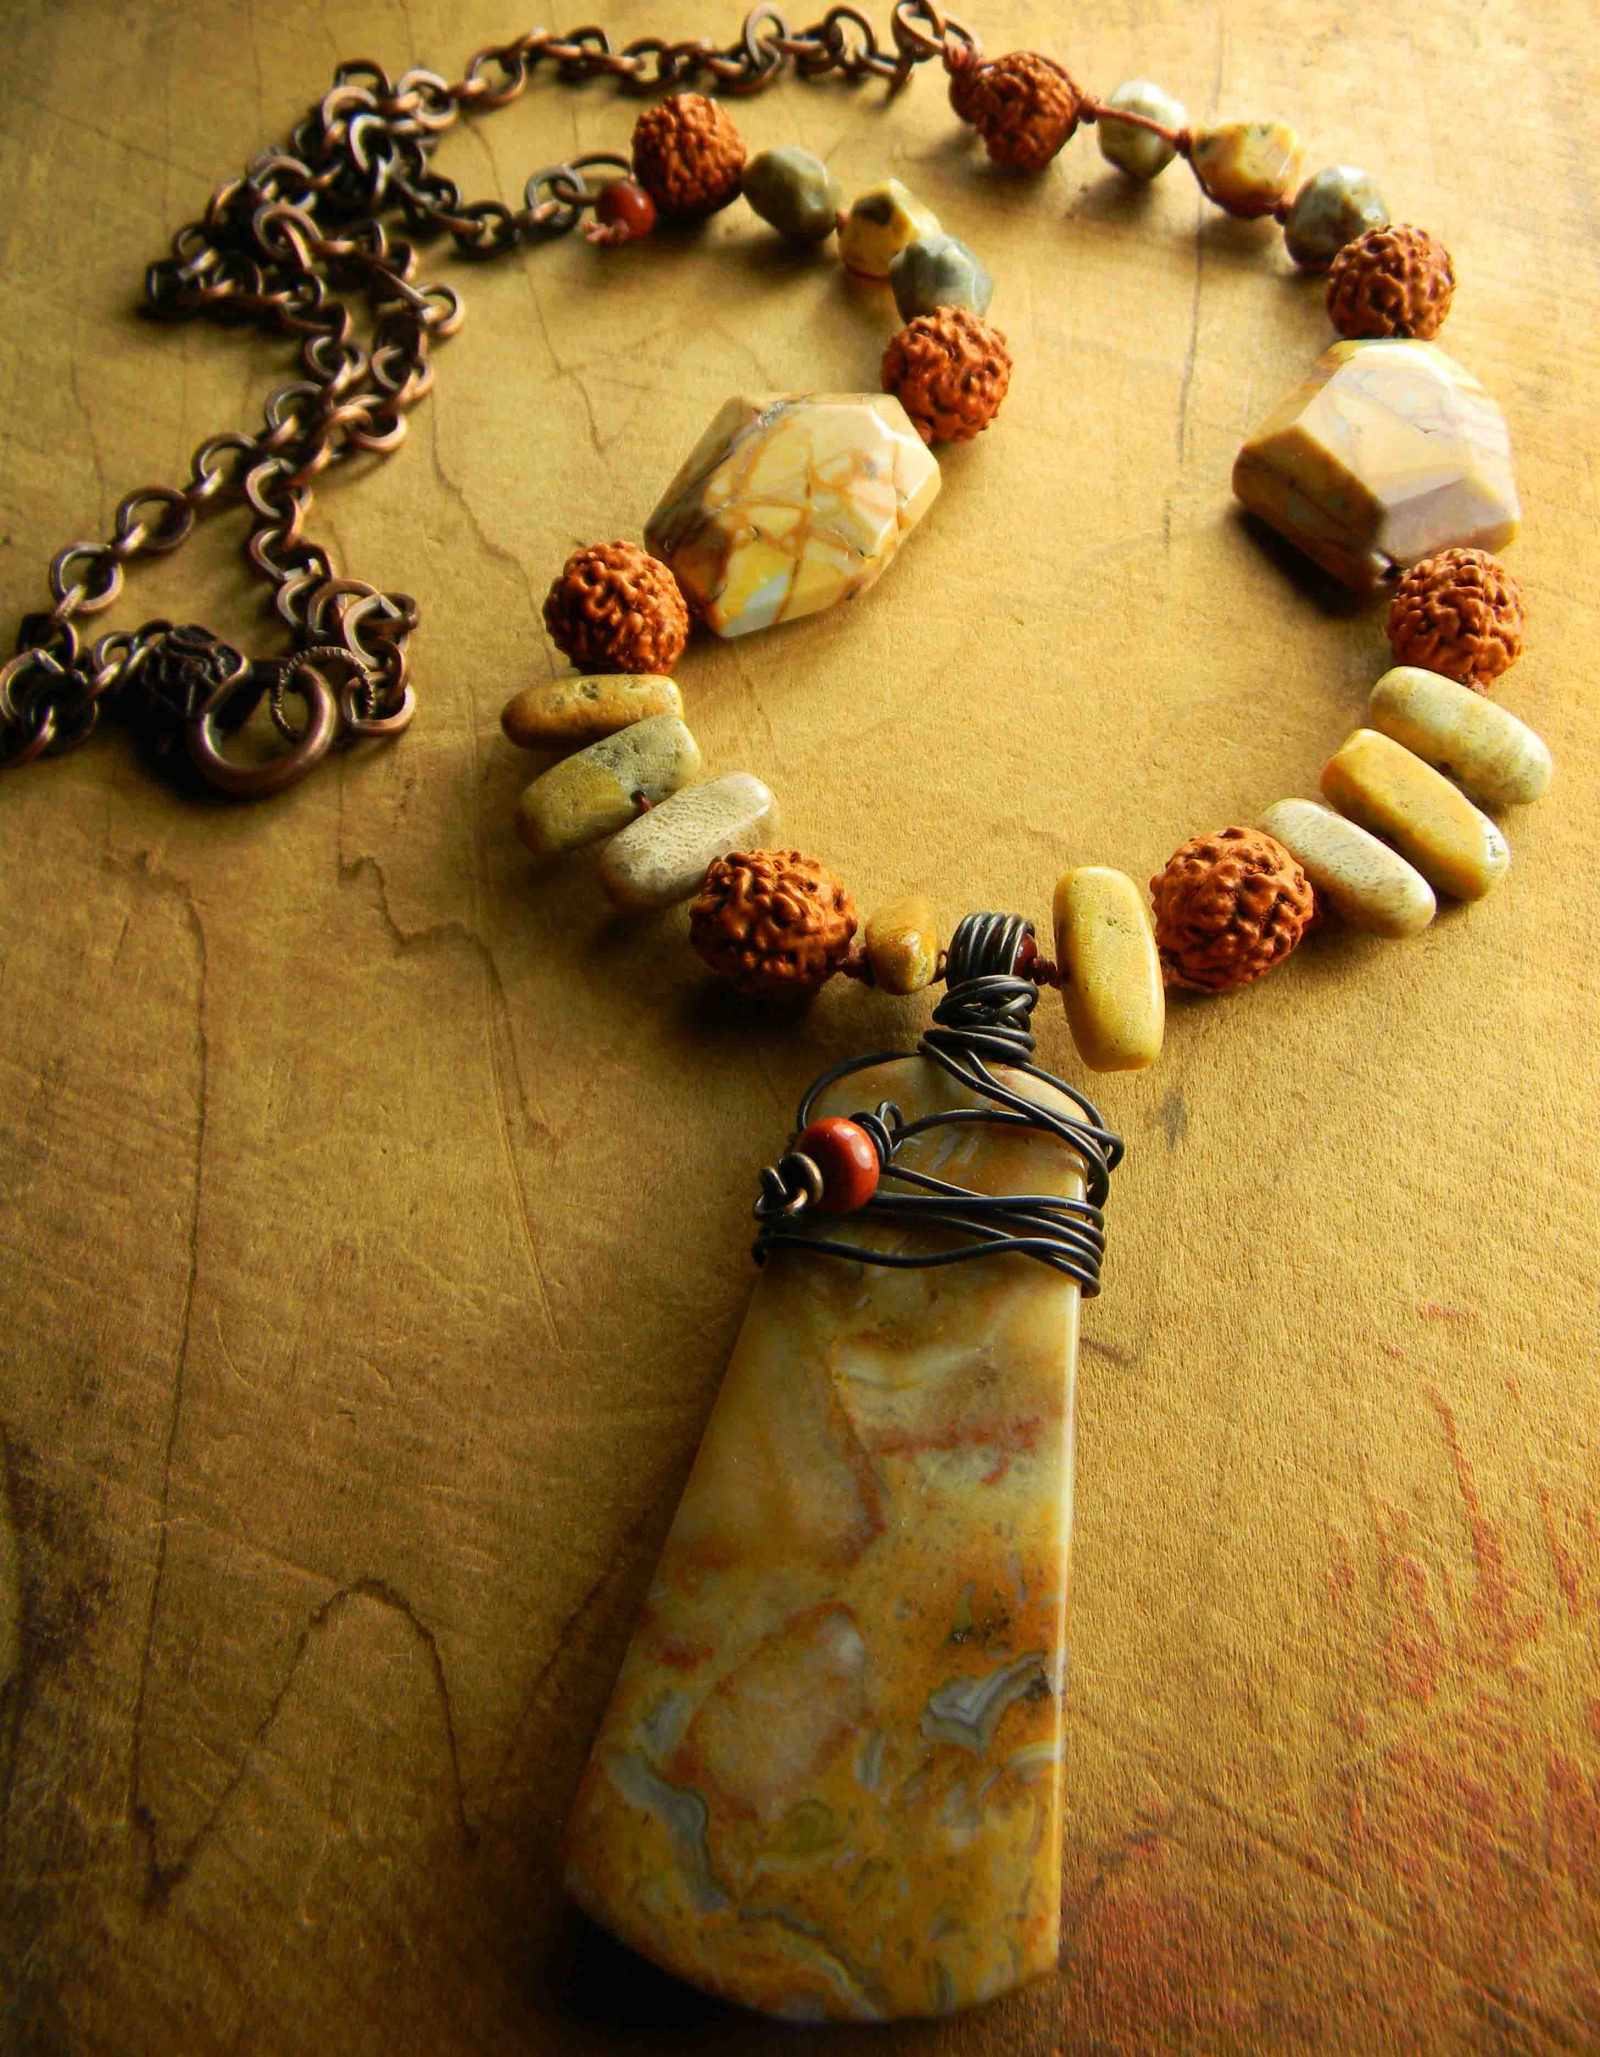 Crazy lace agate pendant necklace chrysalis tribal jewelry crazy lace agate necklace pendant extra long yellow rust brown copper aloadofball Choice Image